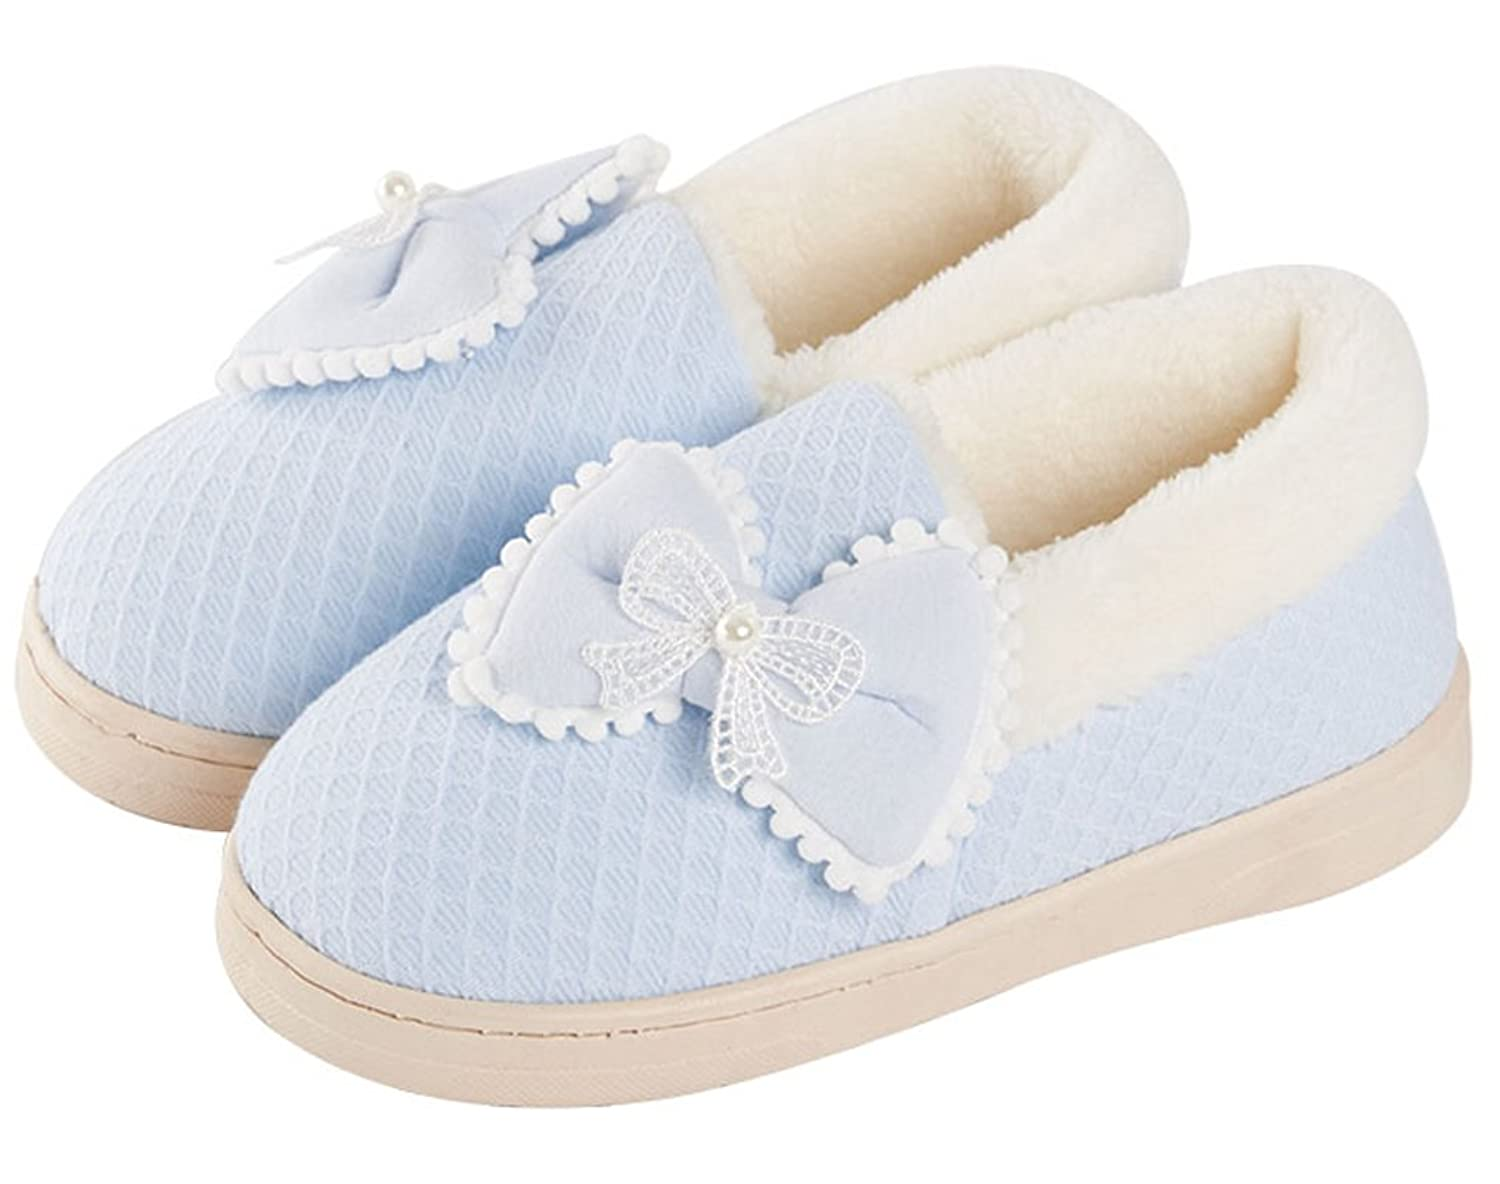 FreLO Women's Blue Cotton Bow Cute Slipper Shoes Warm Slippers